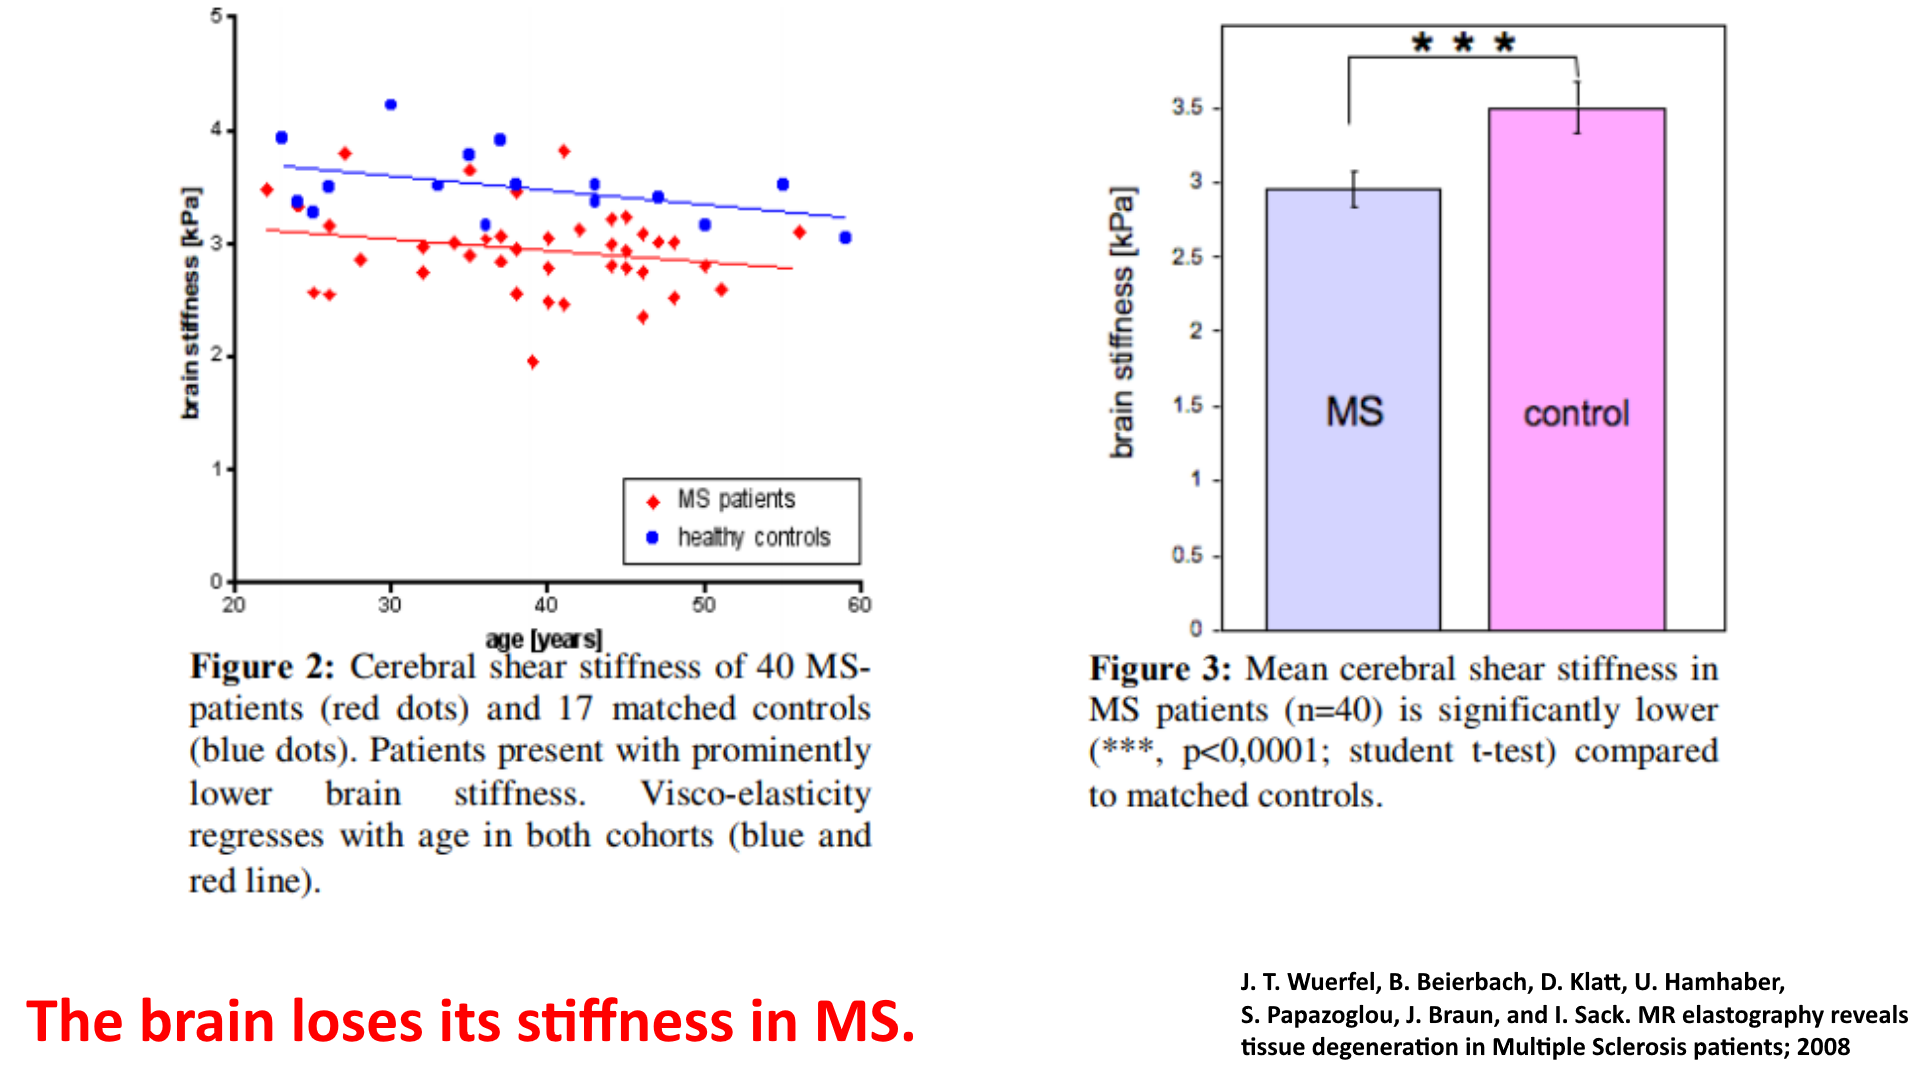 brain stiffness in ms patient and control